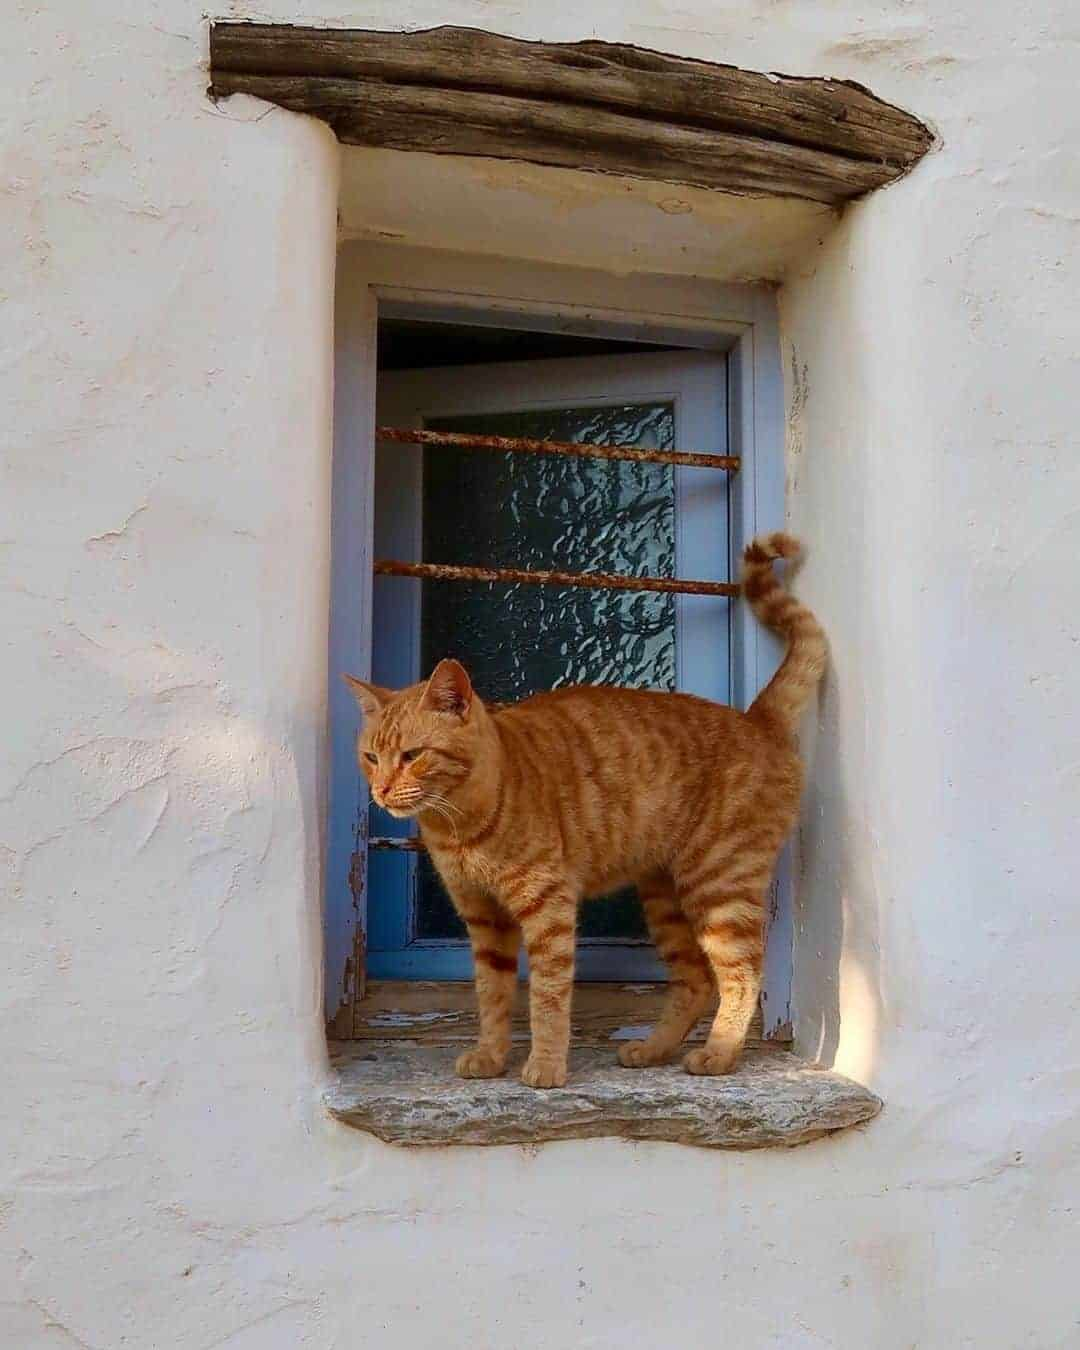 Cats are everywhere in Greece, but they are generally well-cared for